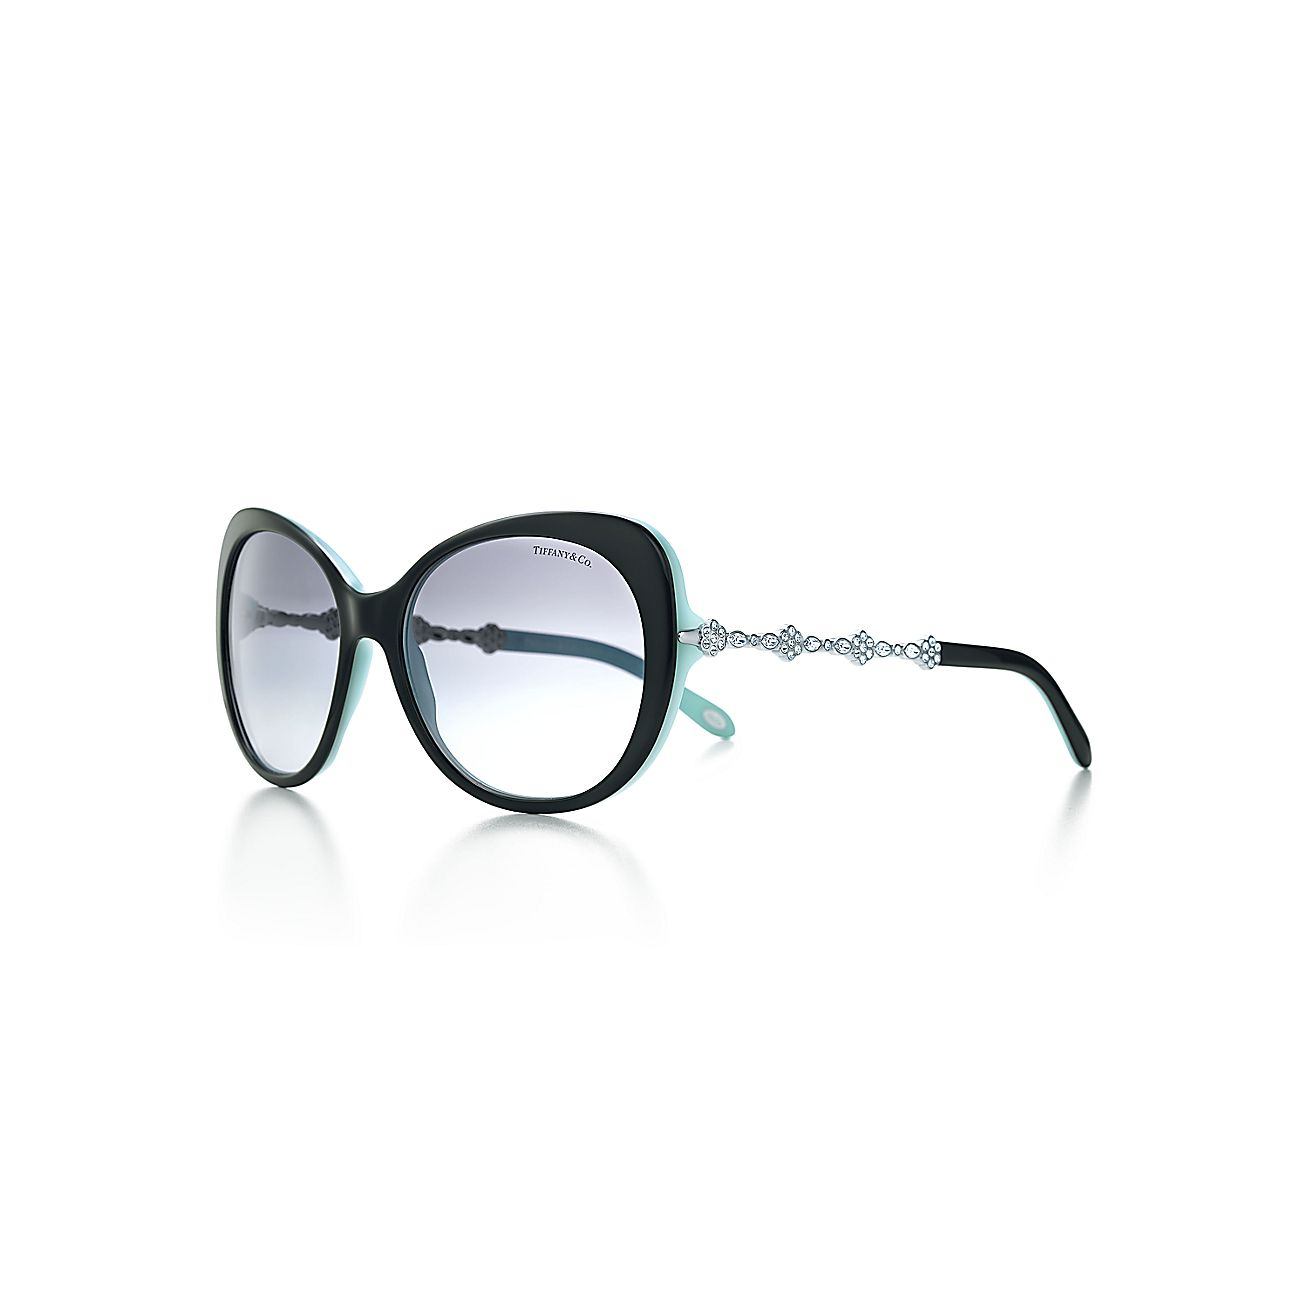 Tiffany Garden:Cat Eye Sunglasses